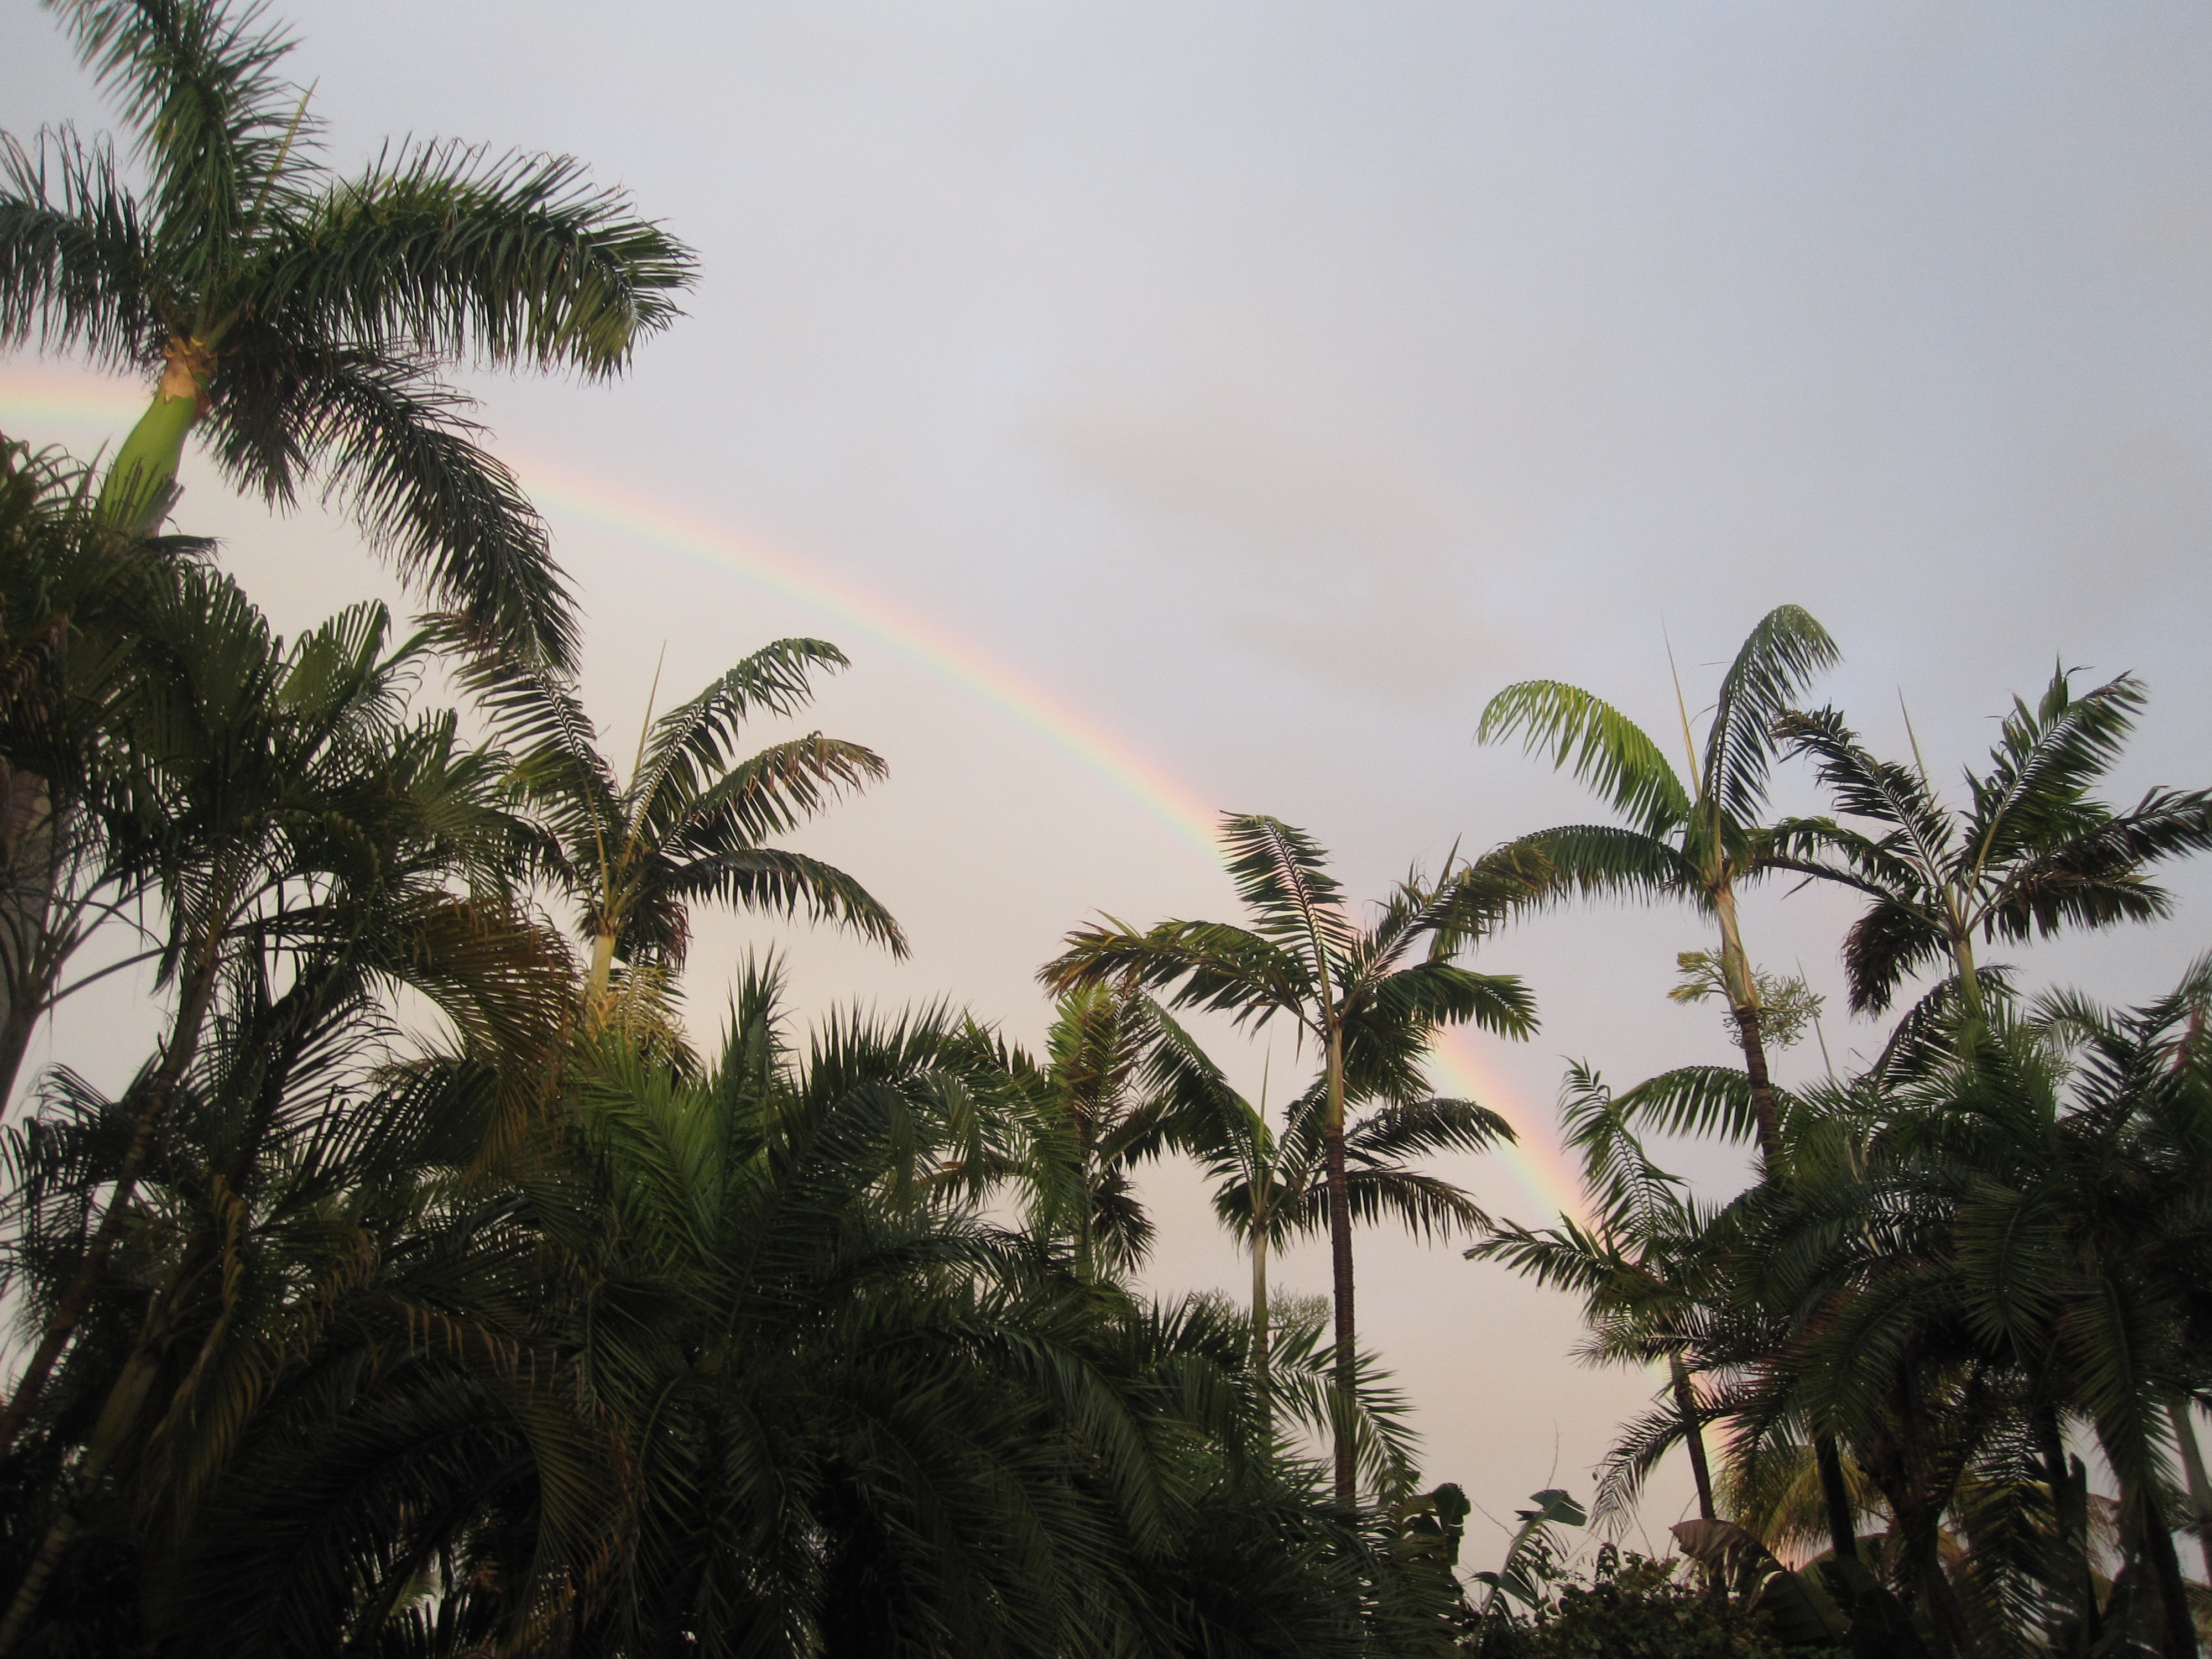 Sure enough, the rain let up and a beautiful rainbow appeared. Did Sandra plan that?